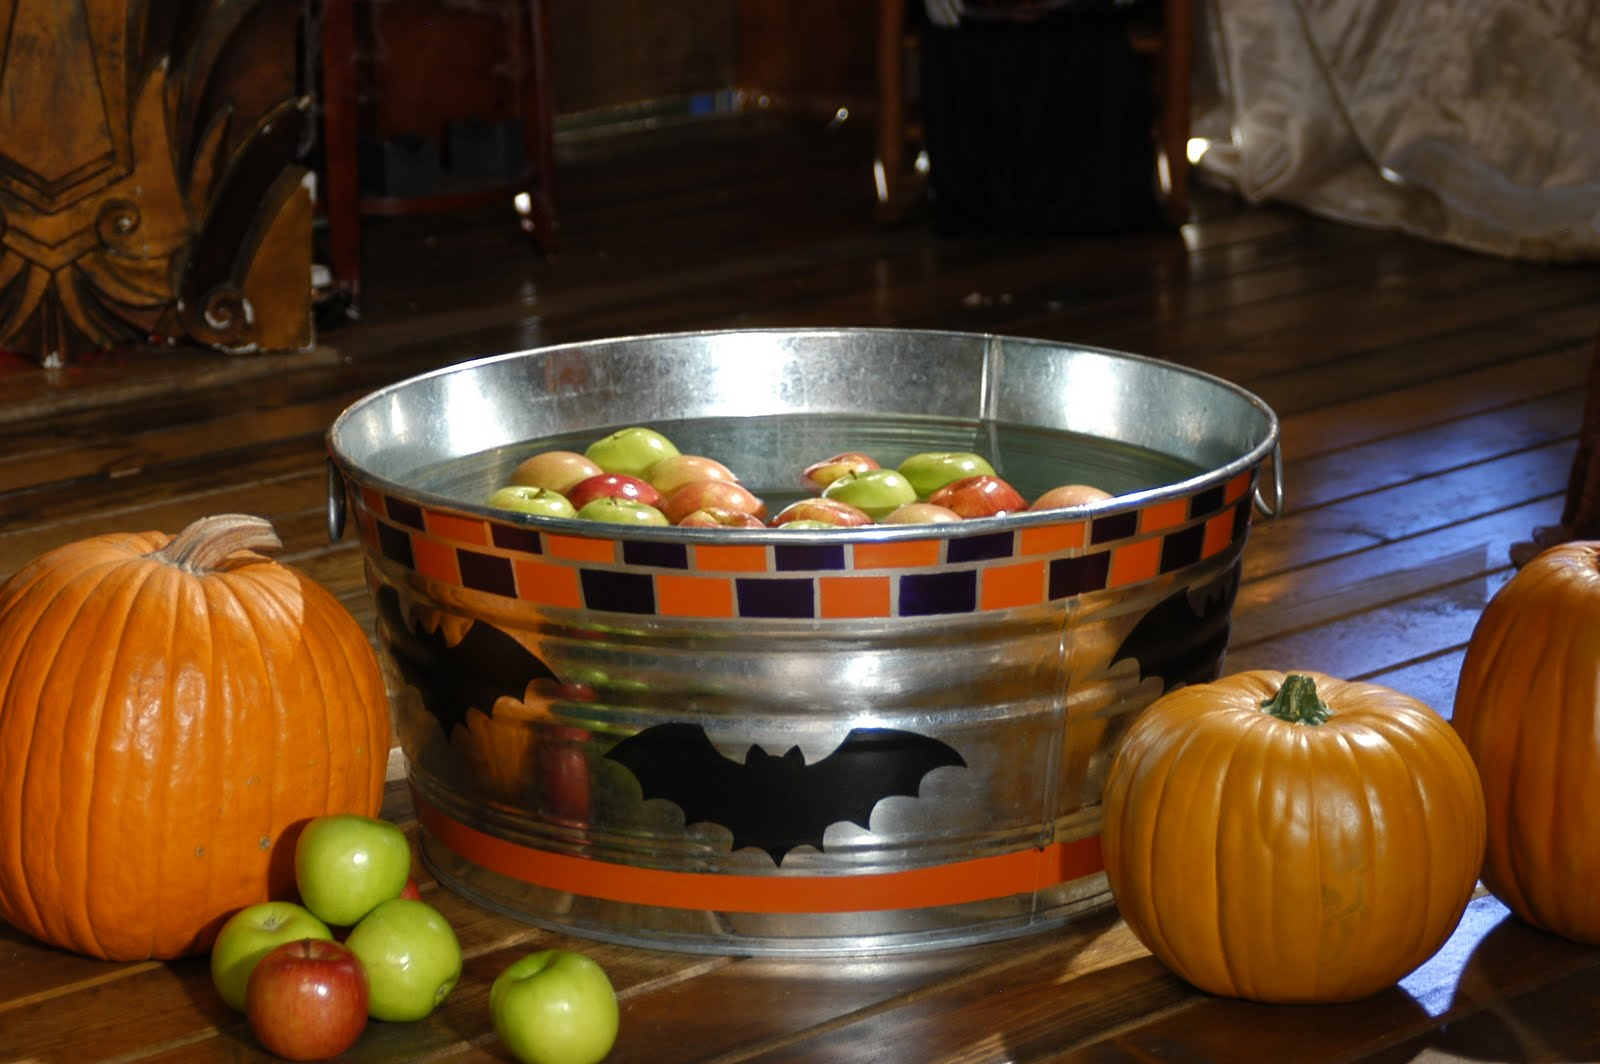 Bill Jackson http://handmadehappyhour.com/2010/10/13/halloween-witch-crafts-apple-bobbing-tub/